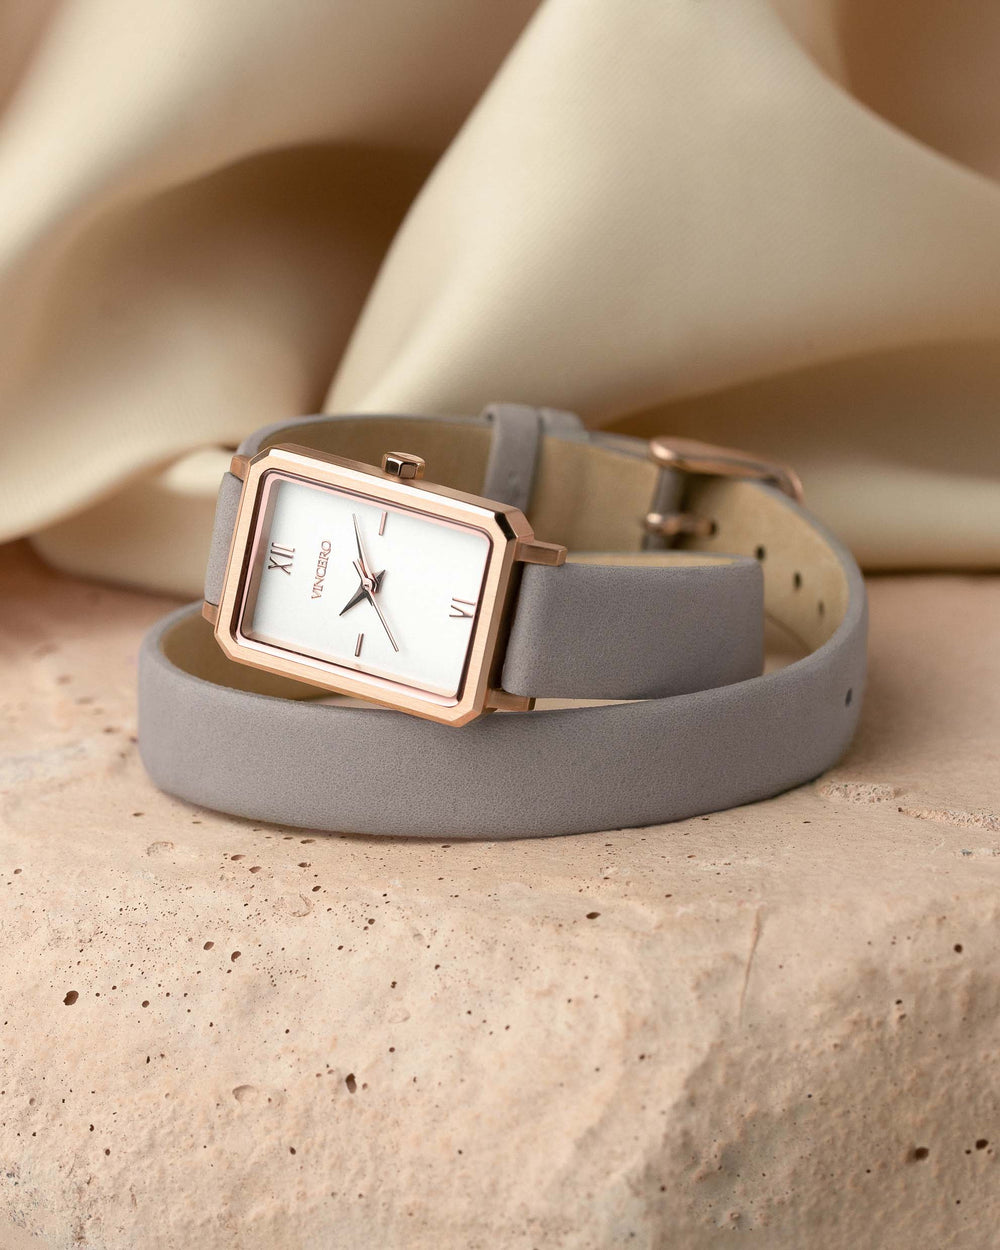 Ava Petite Mist Italian Leather Double Bracelet Strap White Watch Face Silver Case Clasp Rose Gold Accents